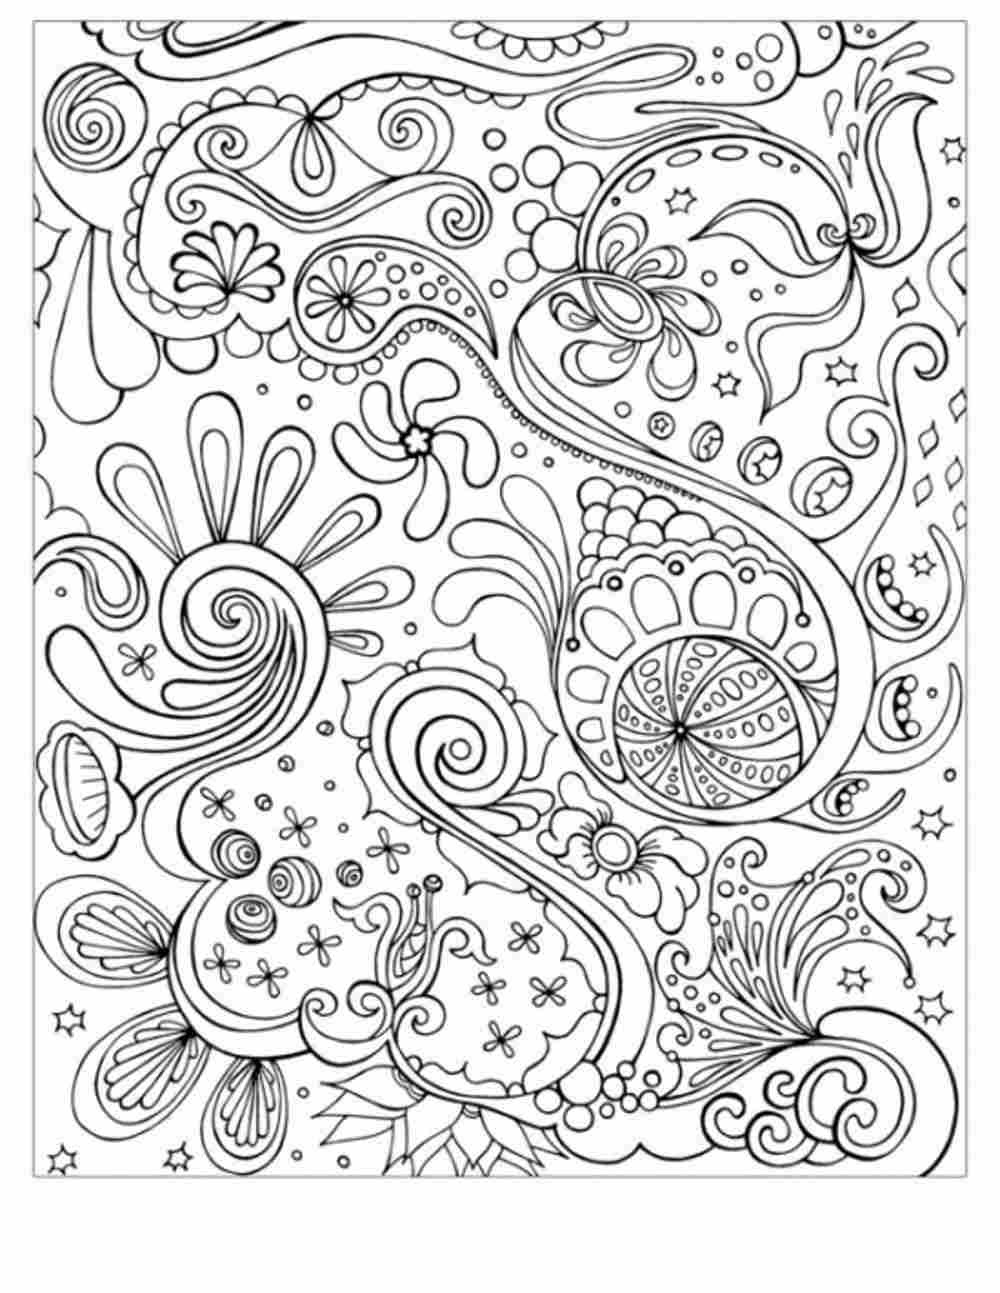 Free Printable Mandala Coloring Pages For Adults Only Coloring And Drawing